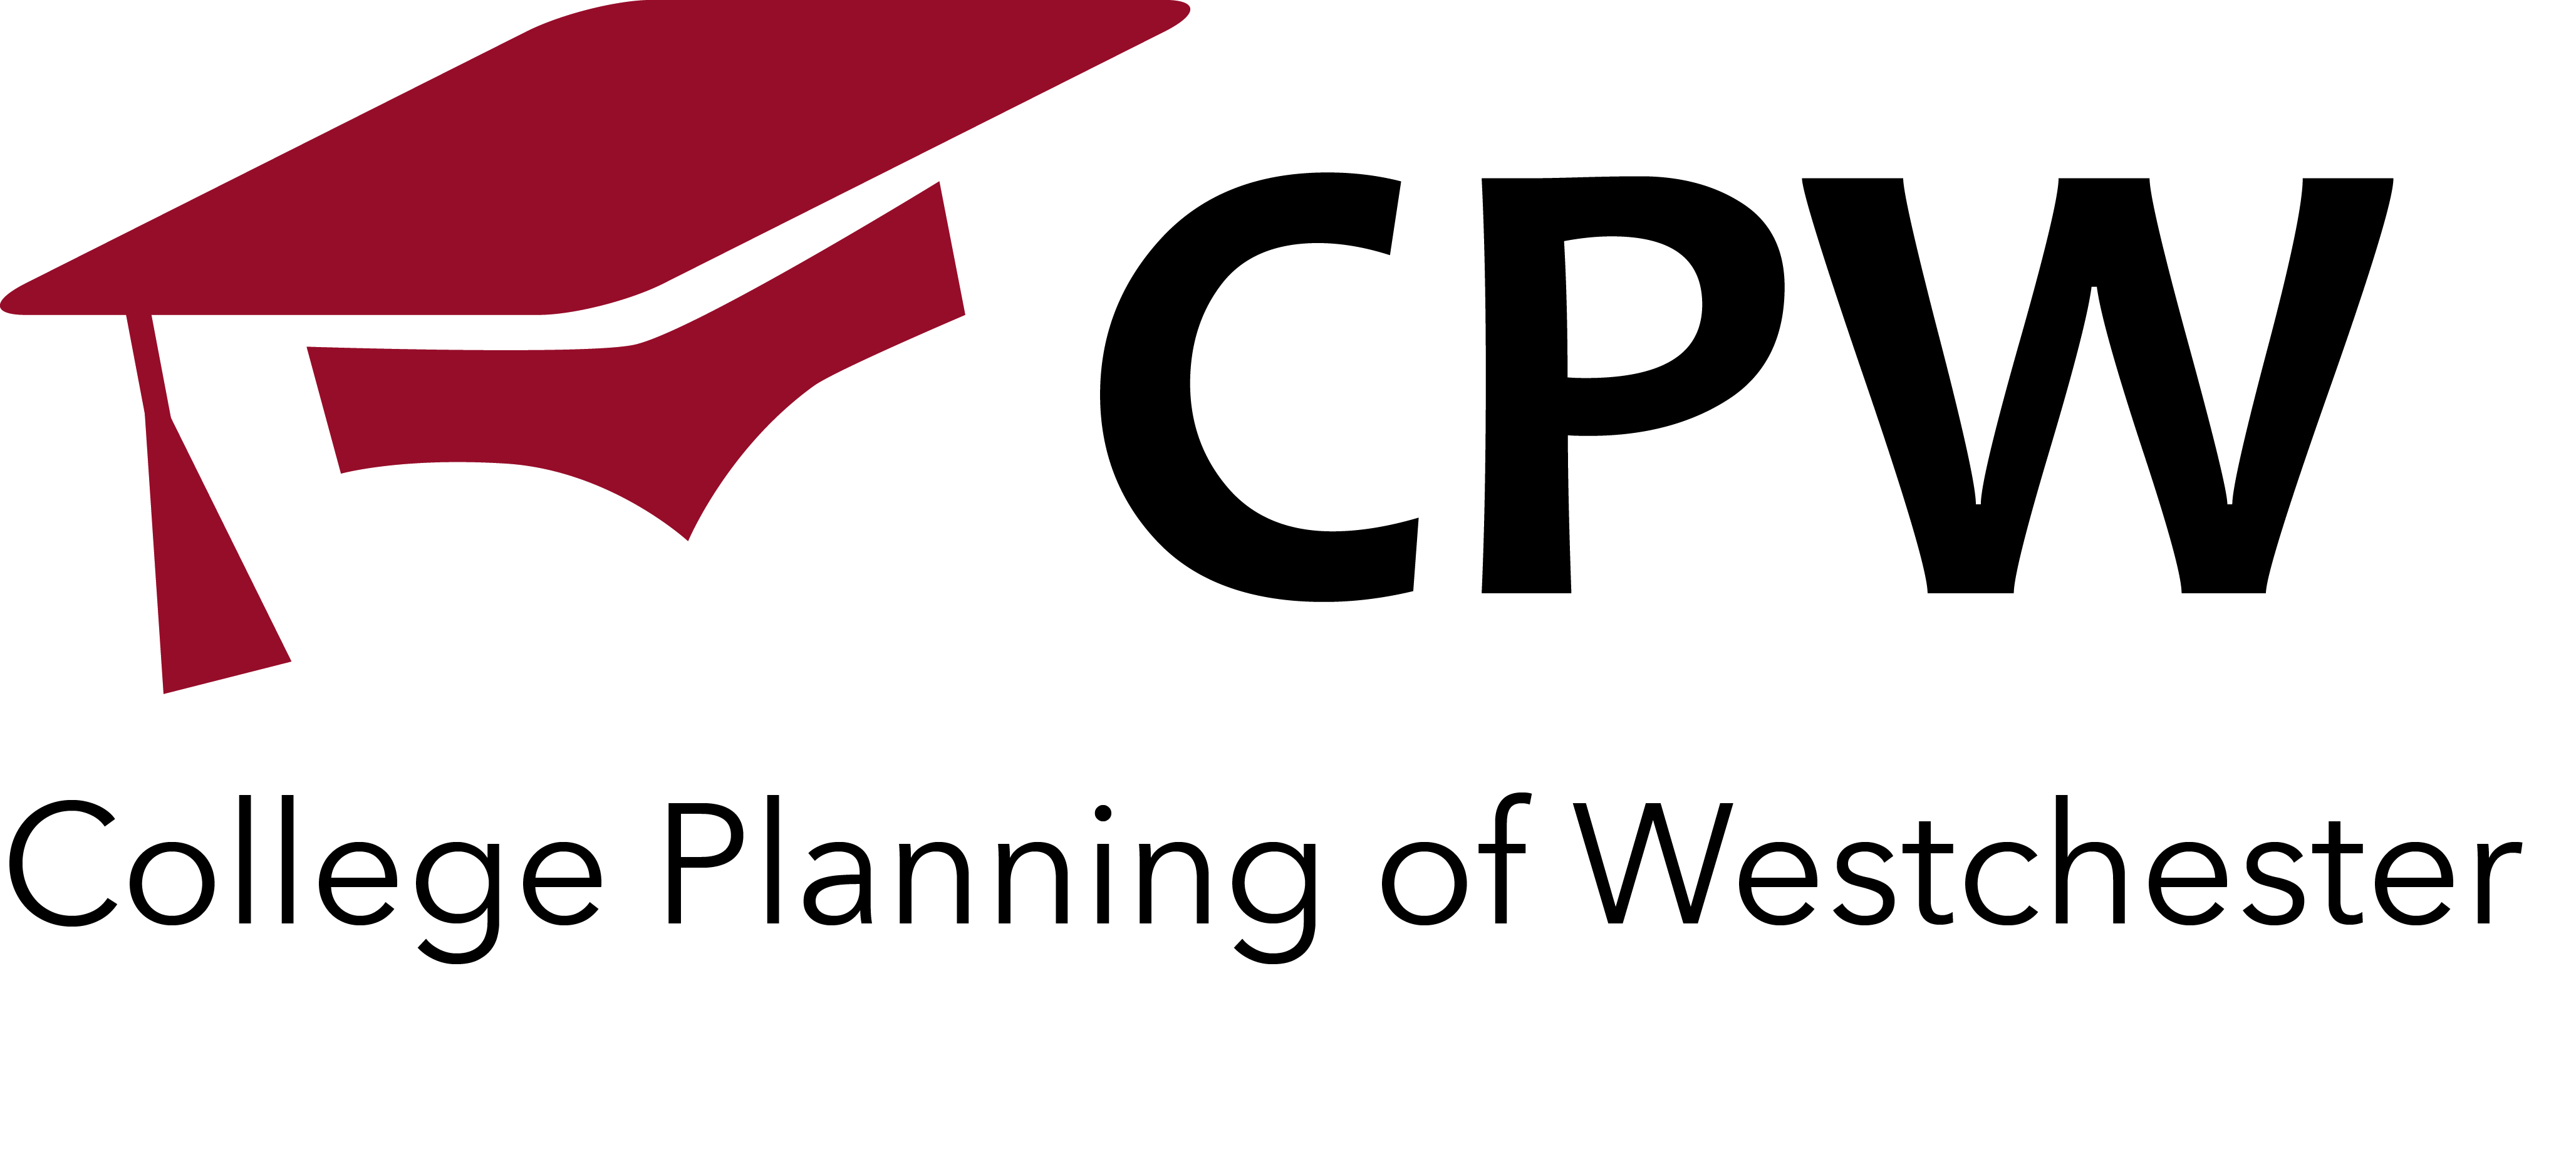 College Planning of Westchester